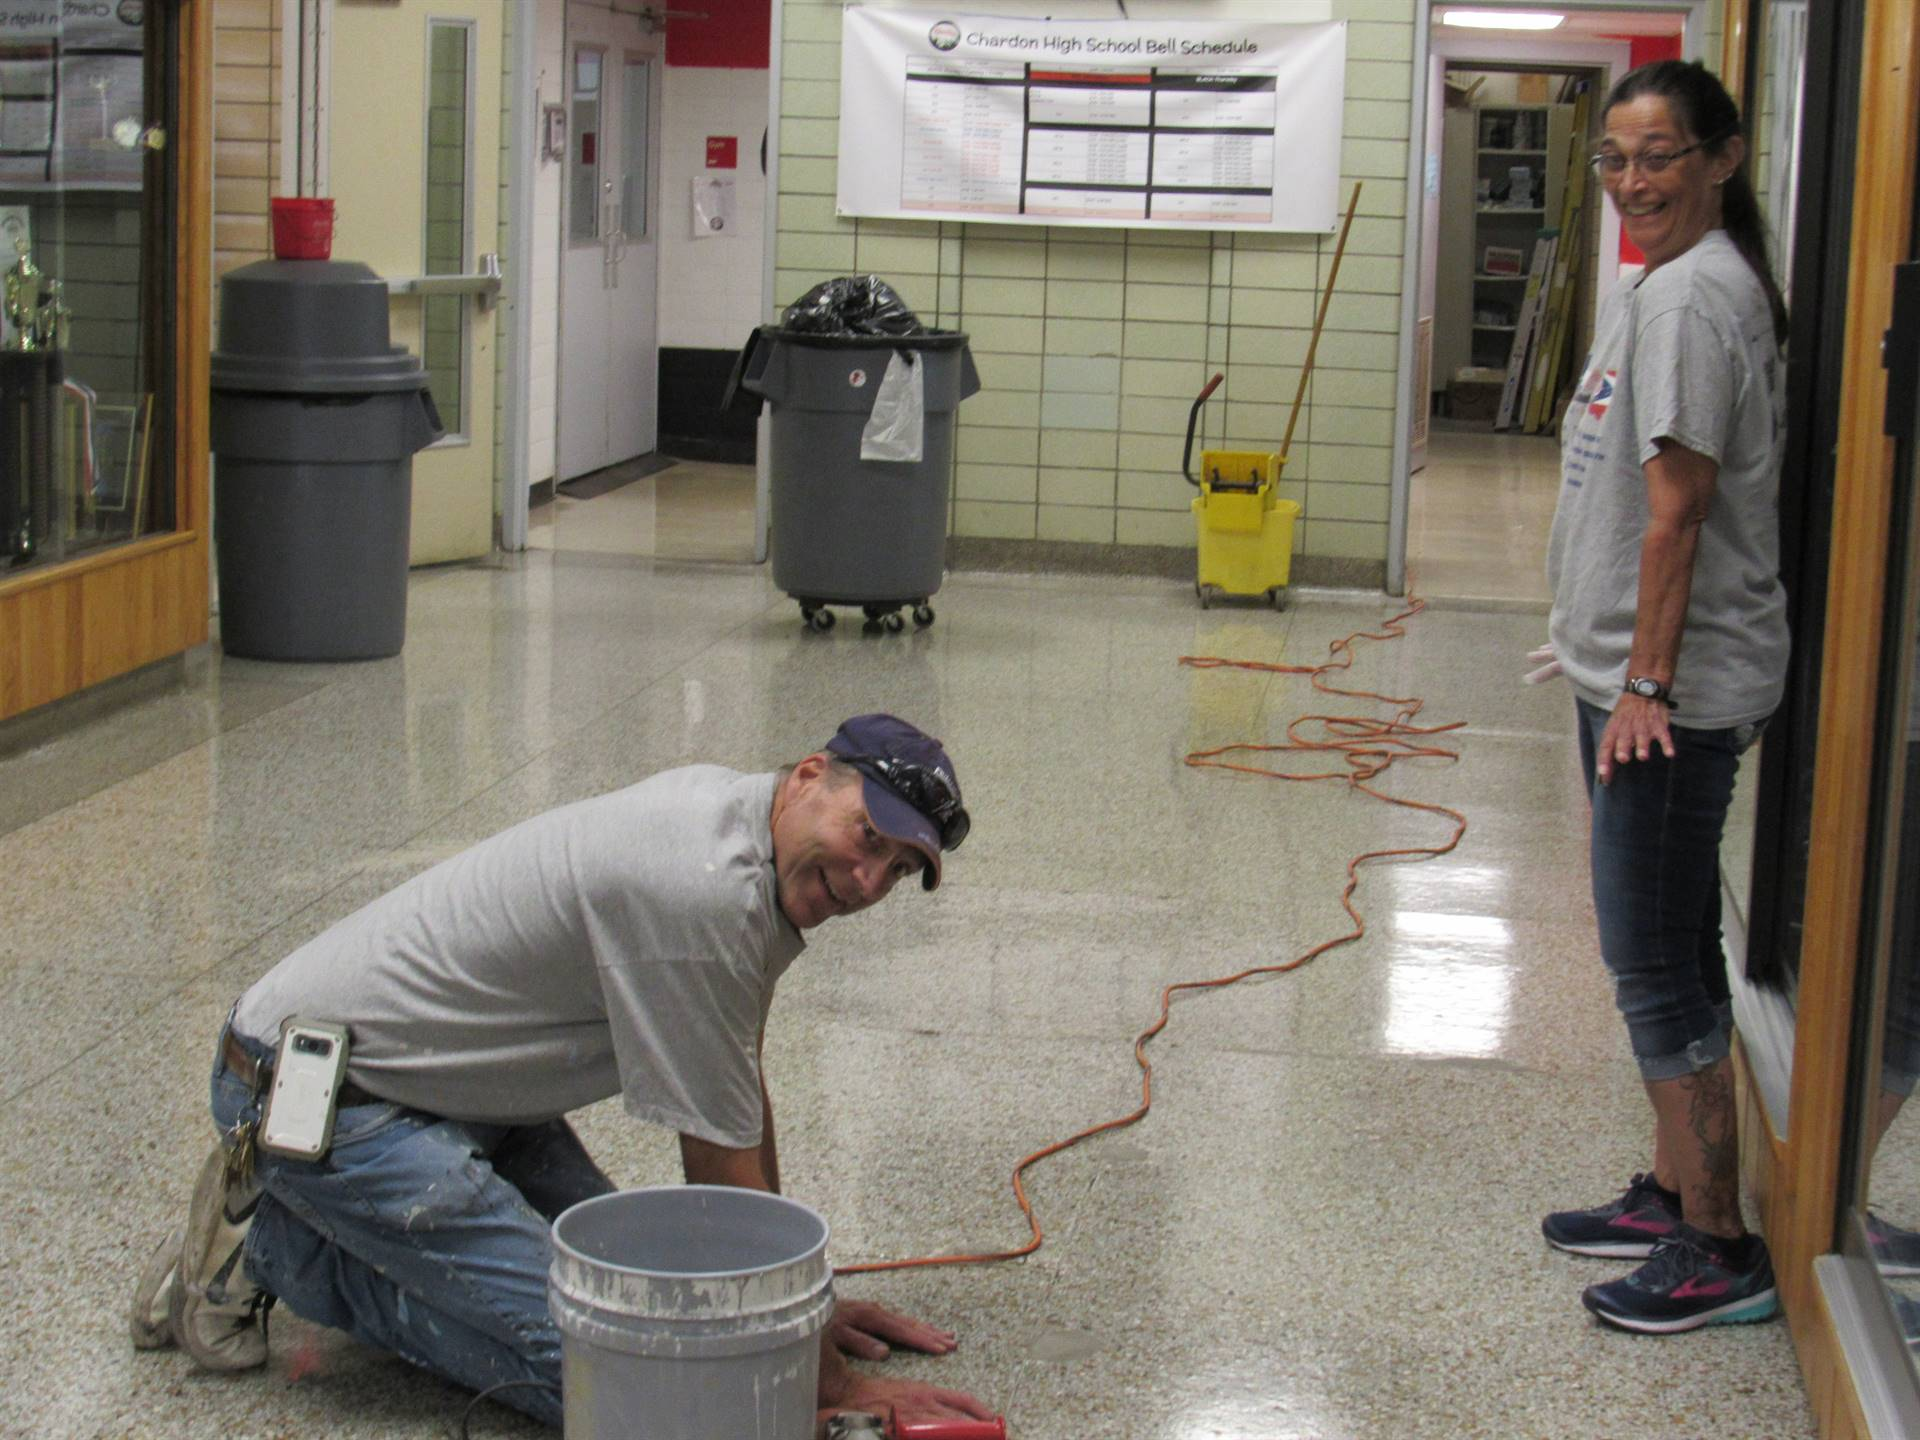 Custodial and Maintenance Staff Members at Chardon High School